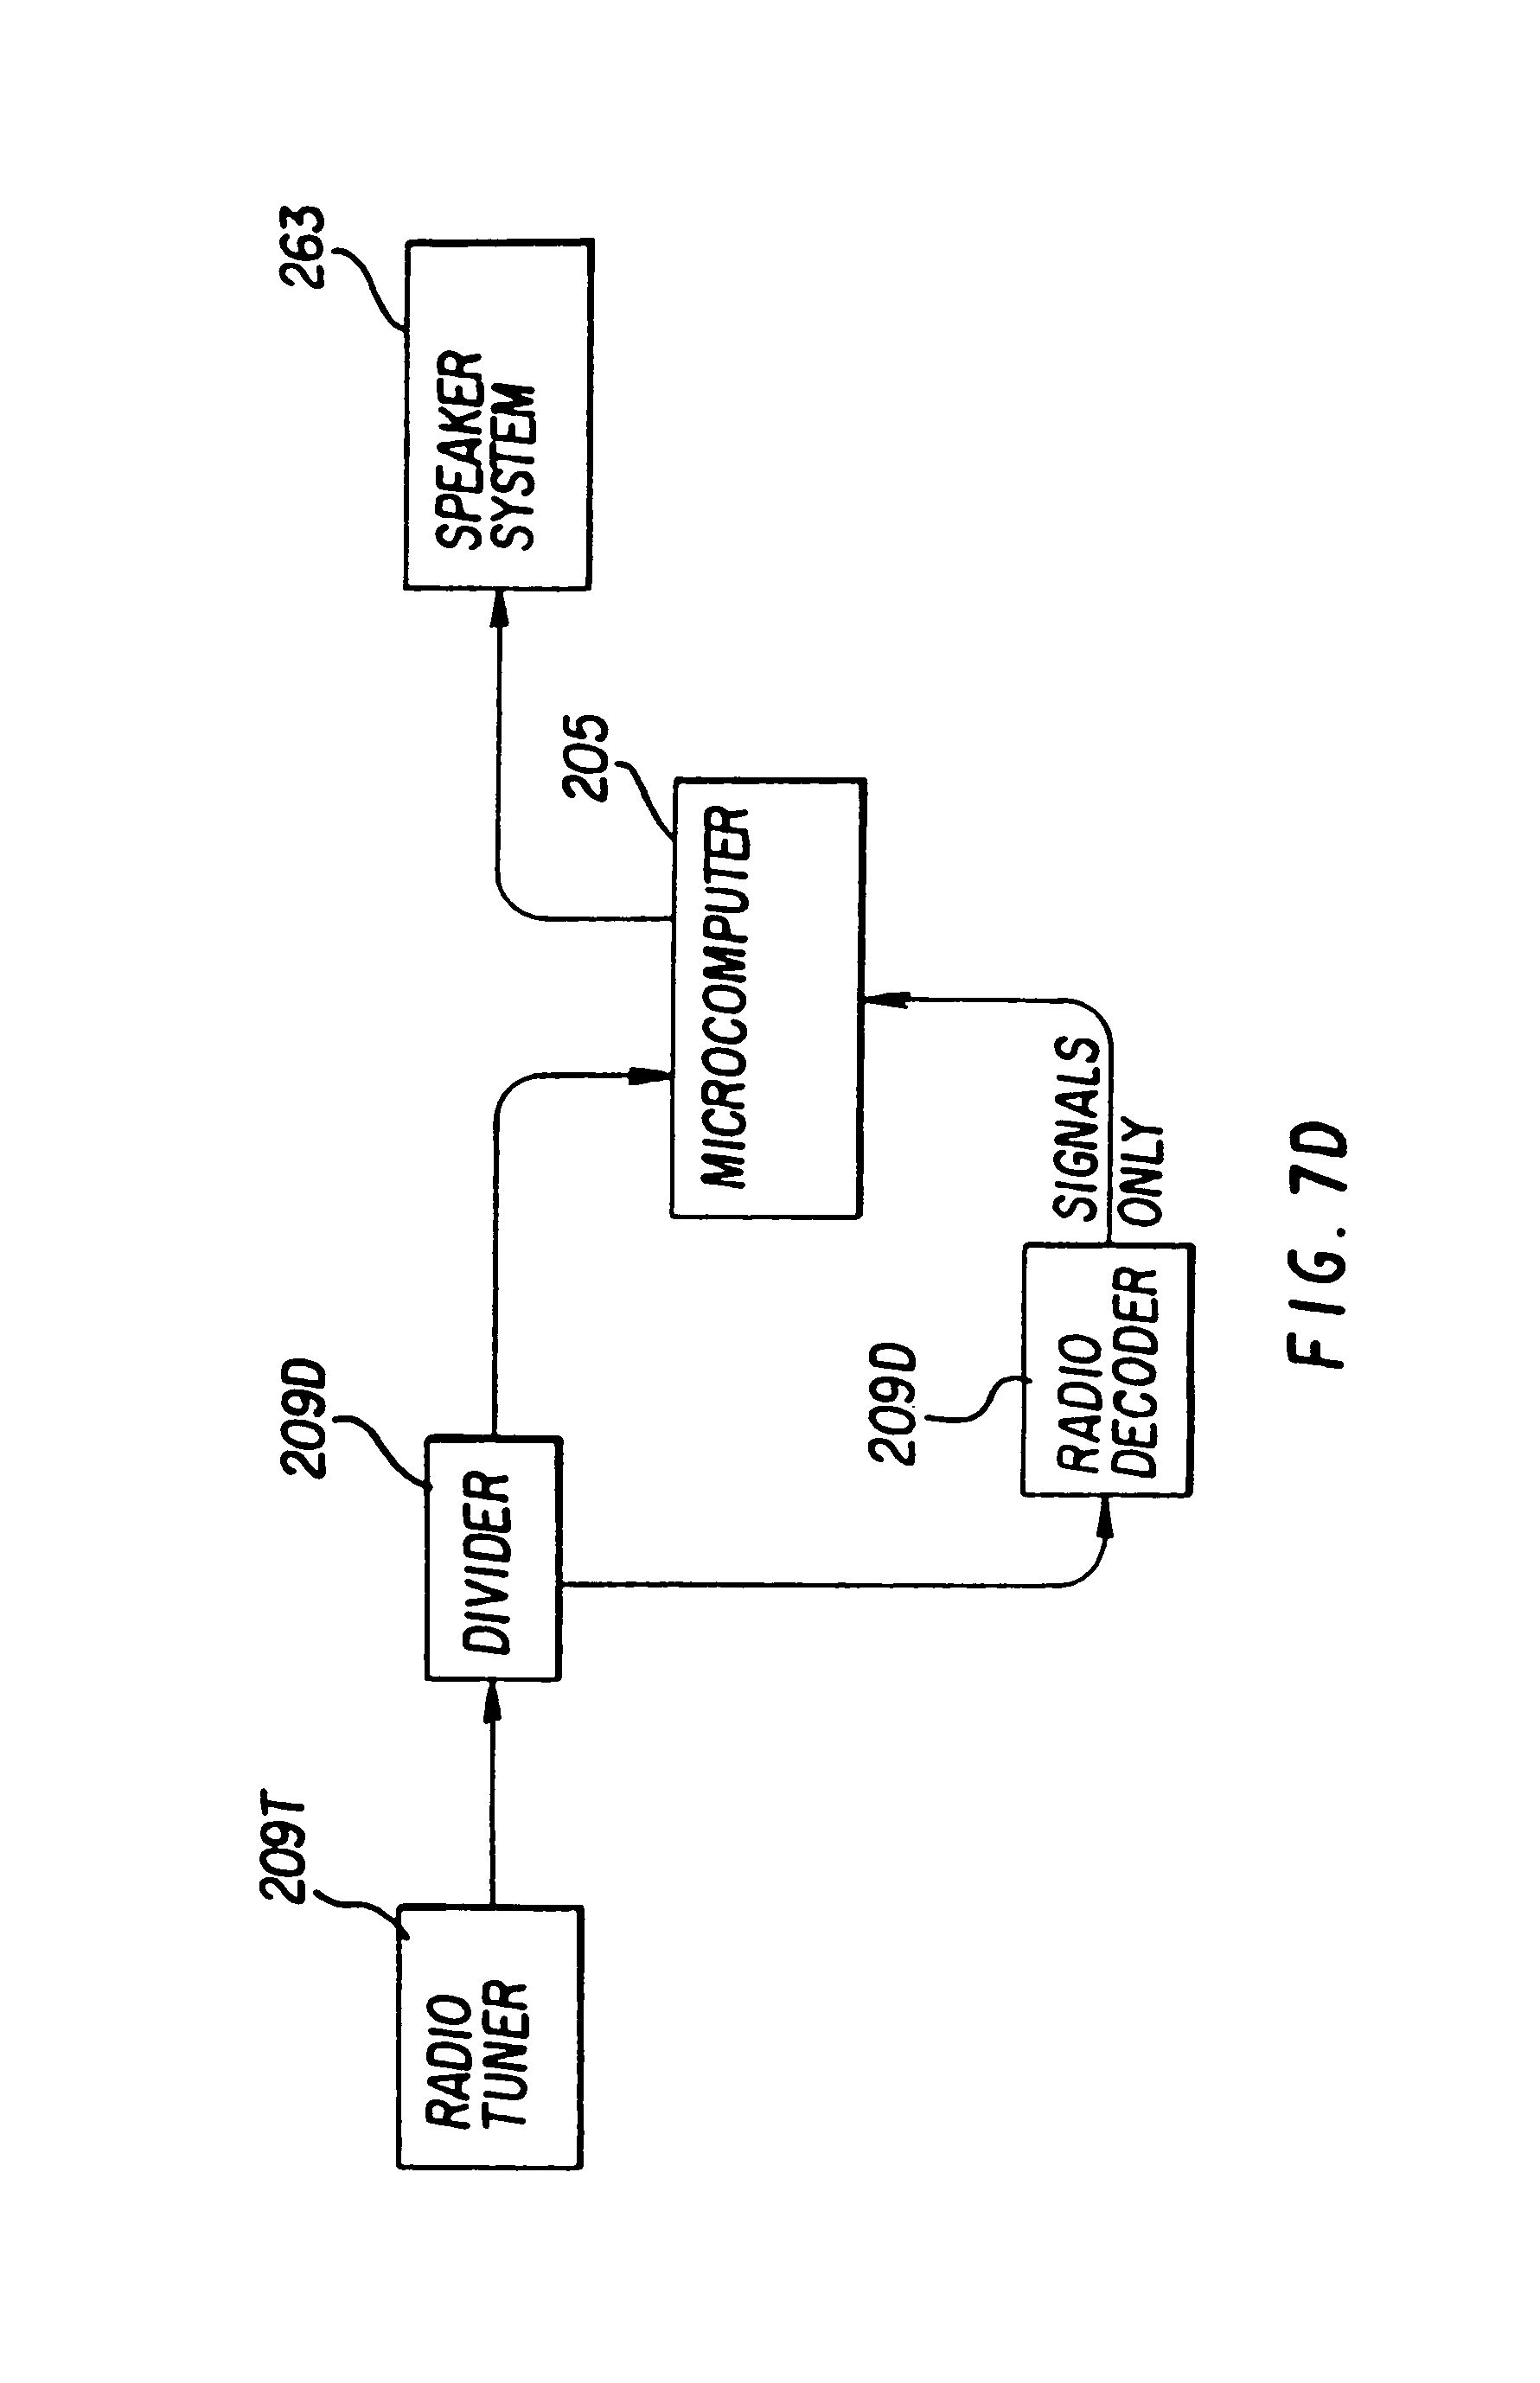 Us8893177b1 Signal Processing Apparatus And Methods Google Patents Fm Demodulation With Rlc Circuits Applet